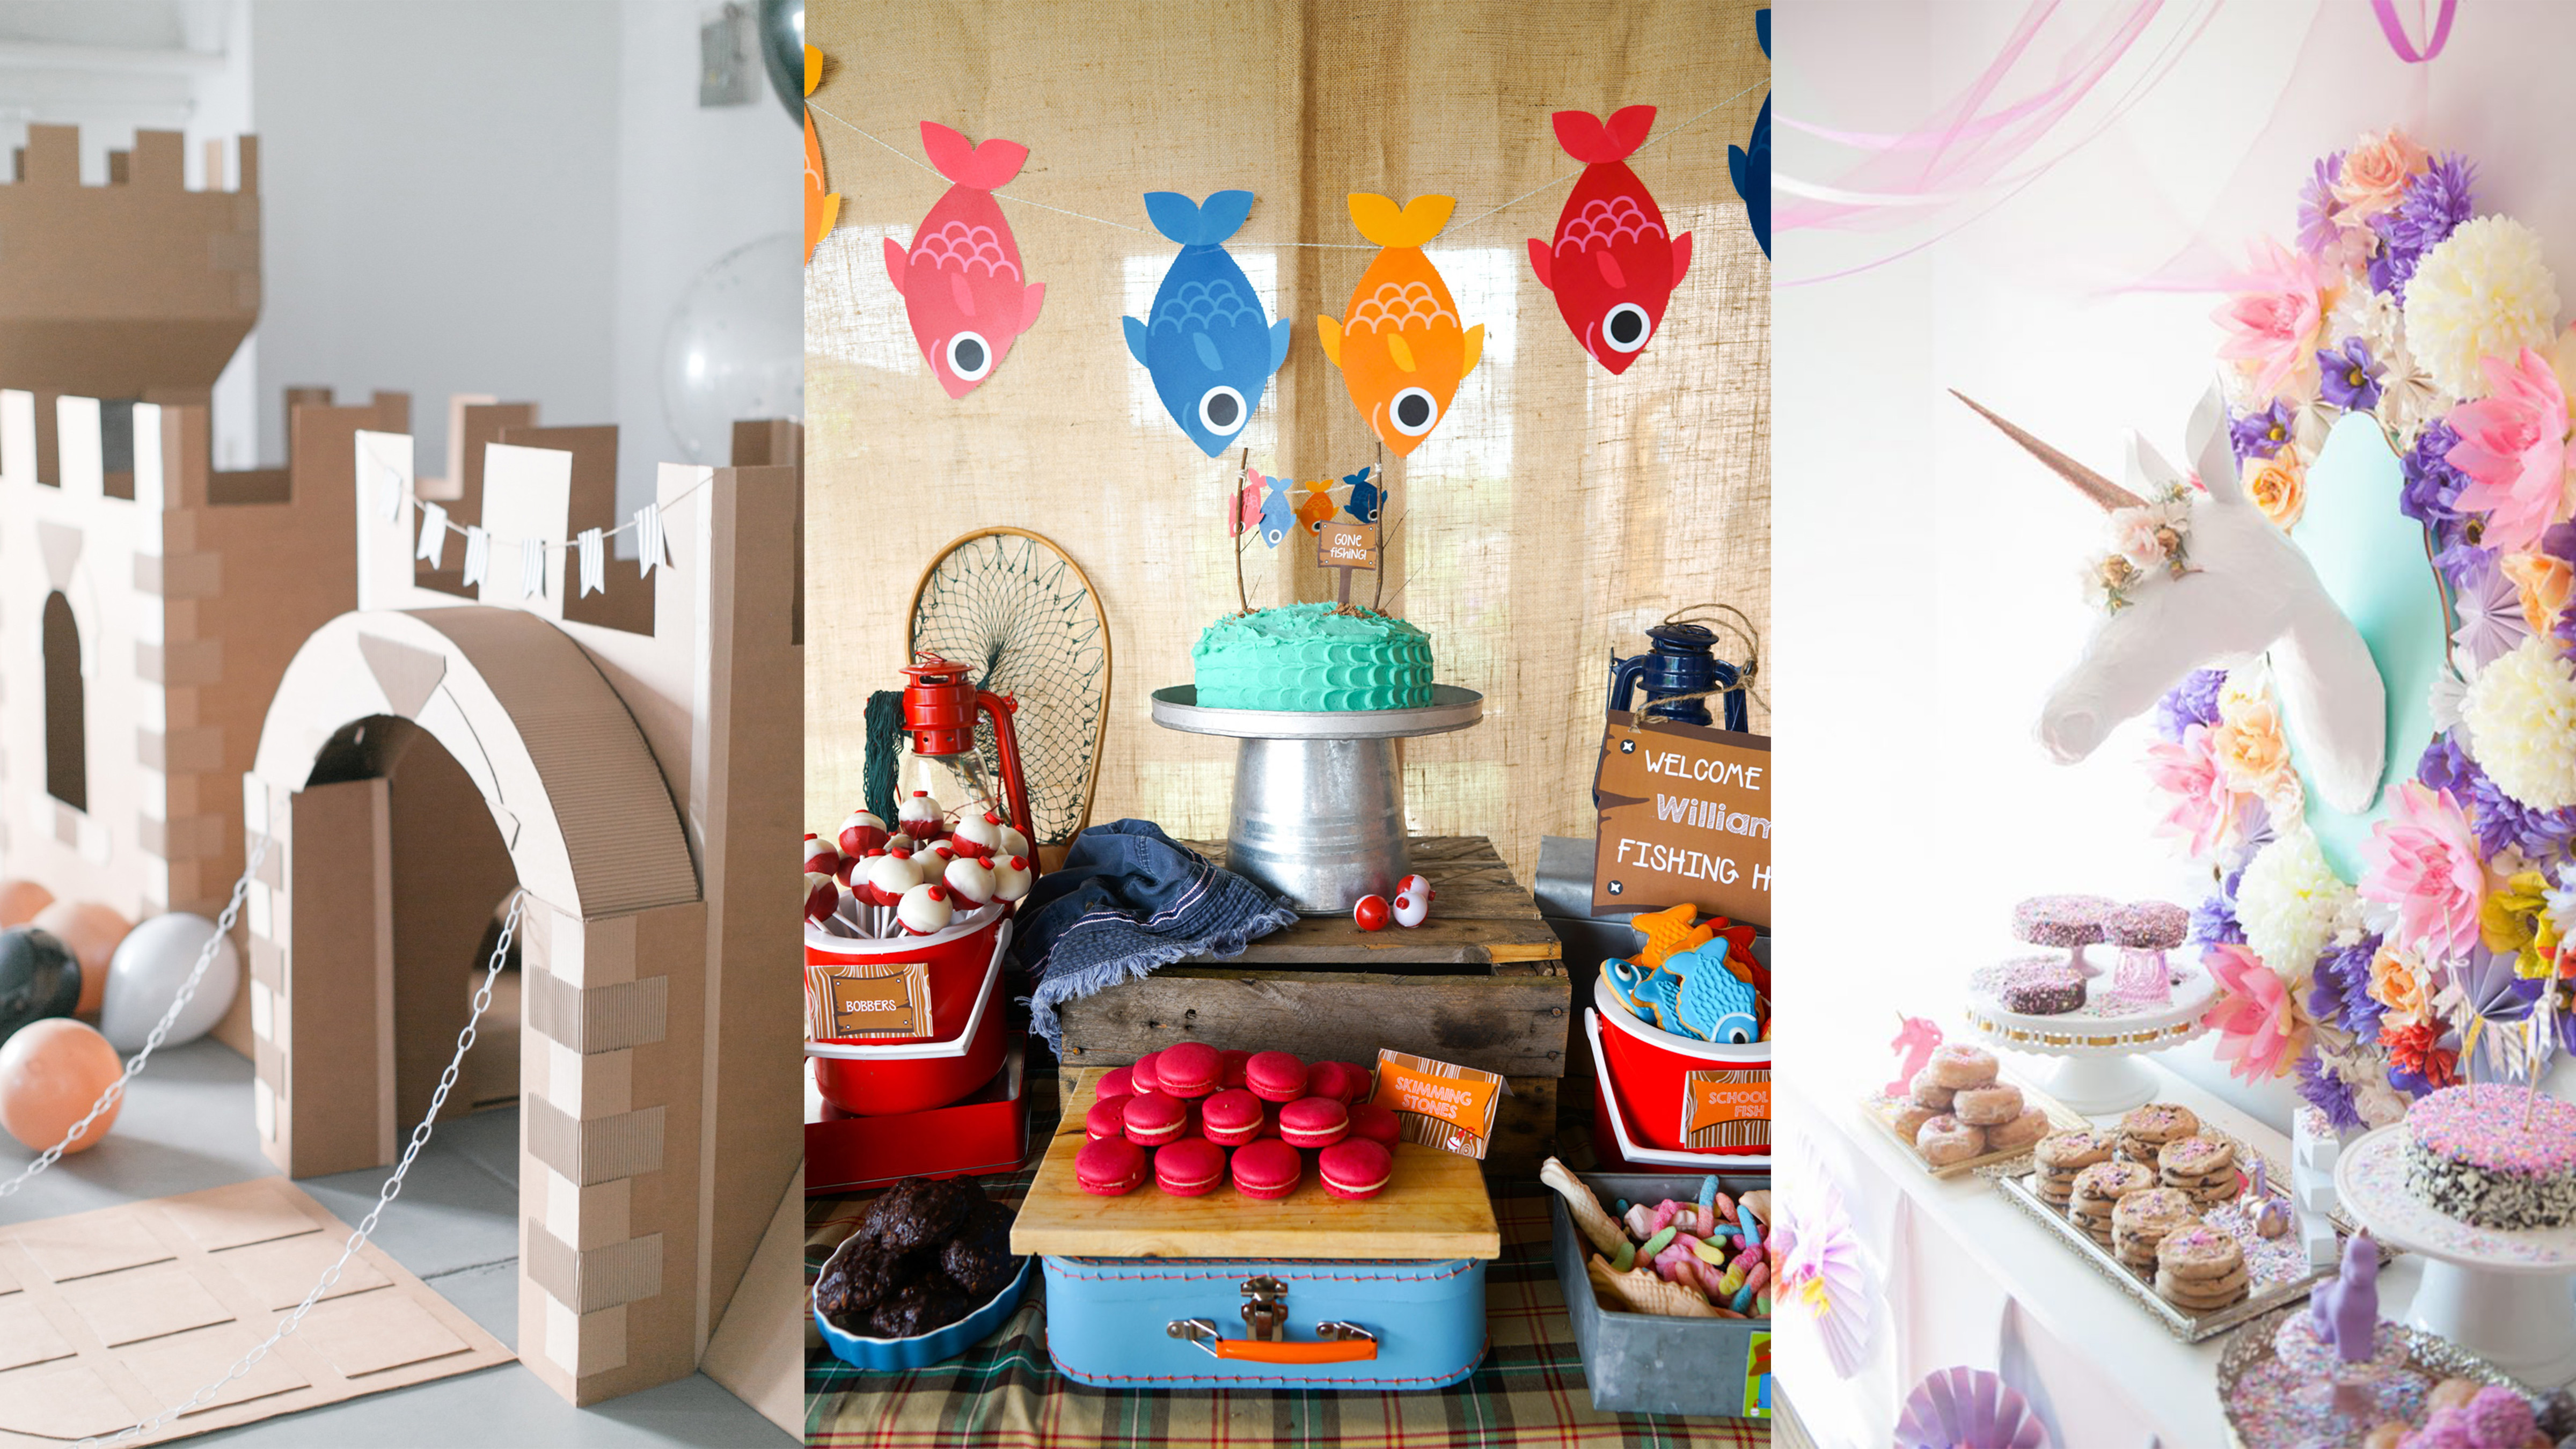 Best ideas about Unique Birthday Party Ideas . Save or Pin 10 Unique Birthday Party Themes for Kids Best Childrens Now.